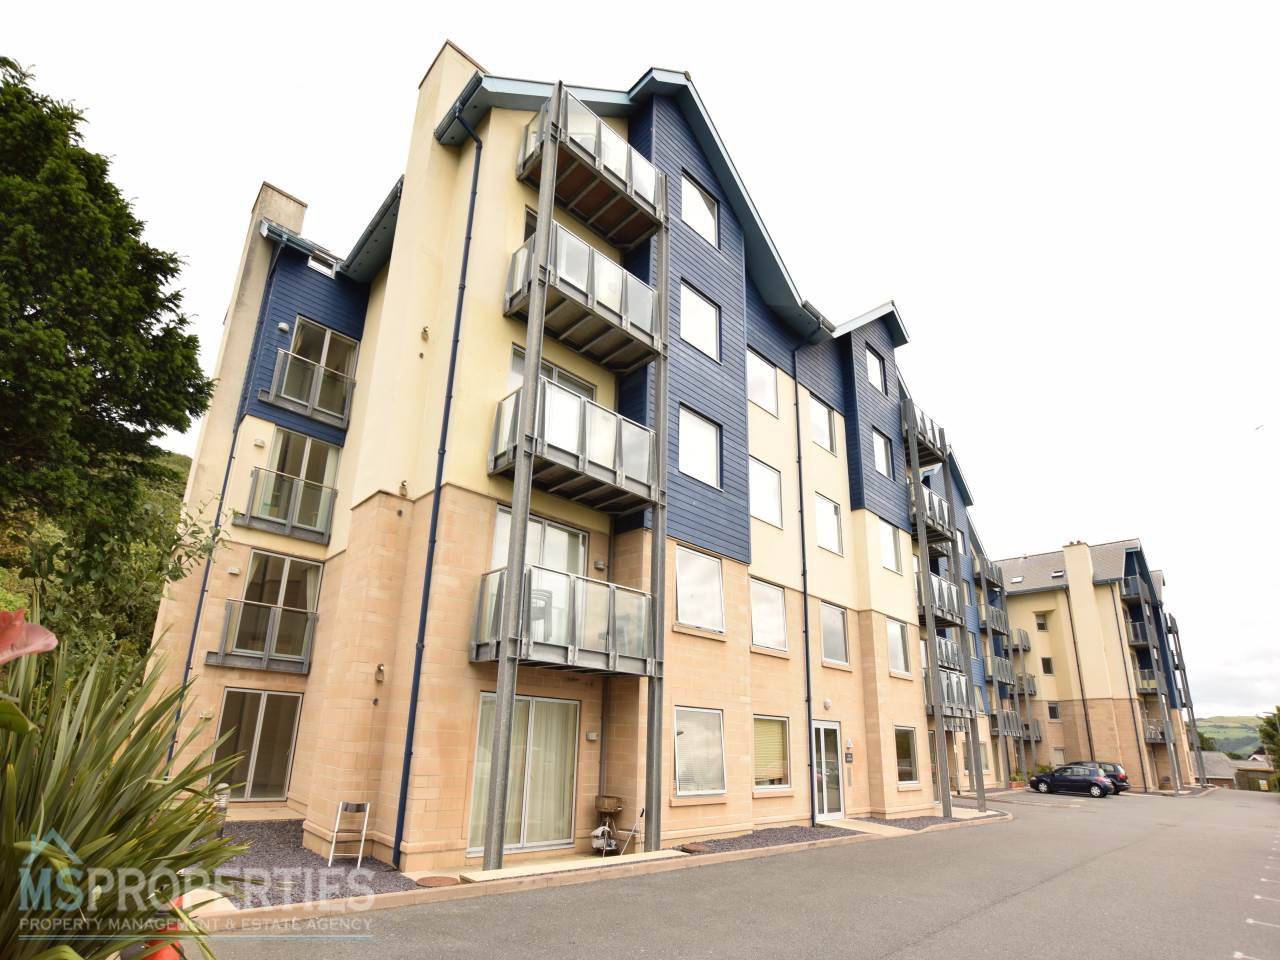 2 bed flat for sale in Plas Dyffryn, North Road - Property Image 1